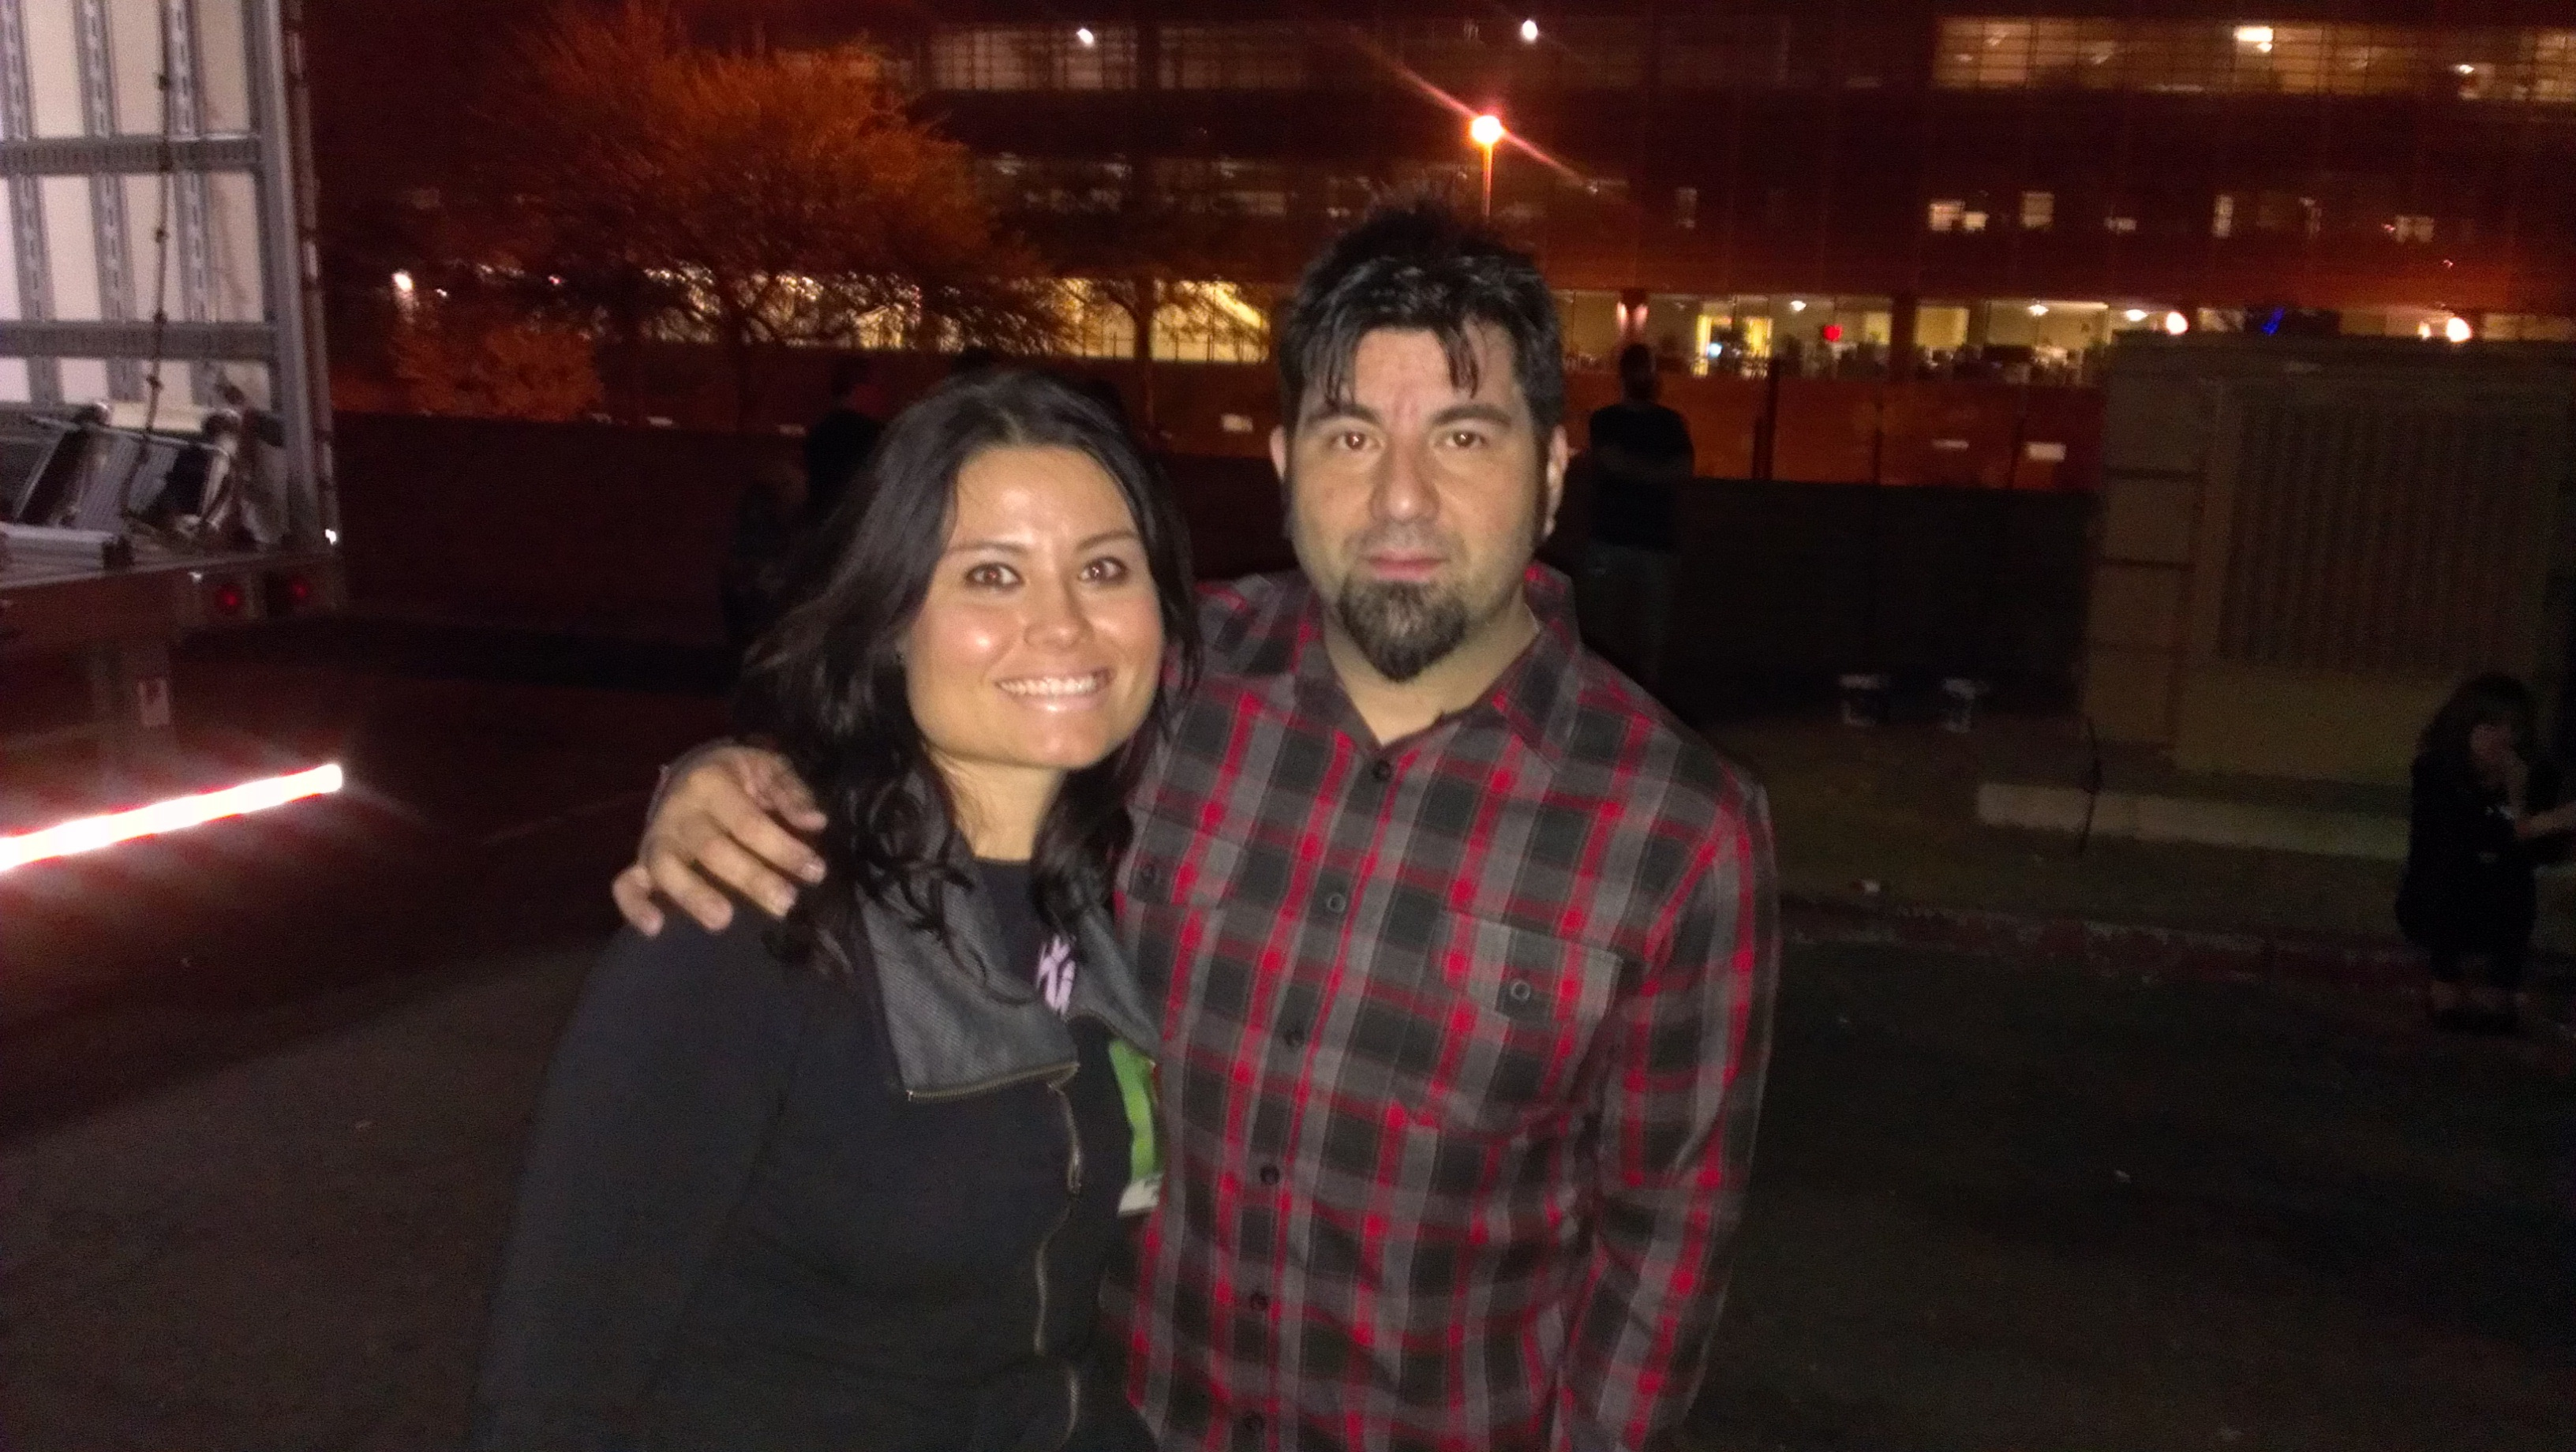 Guess Who Met Deftones? This Girl!